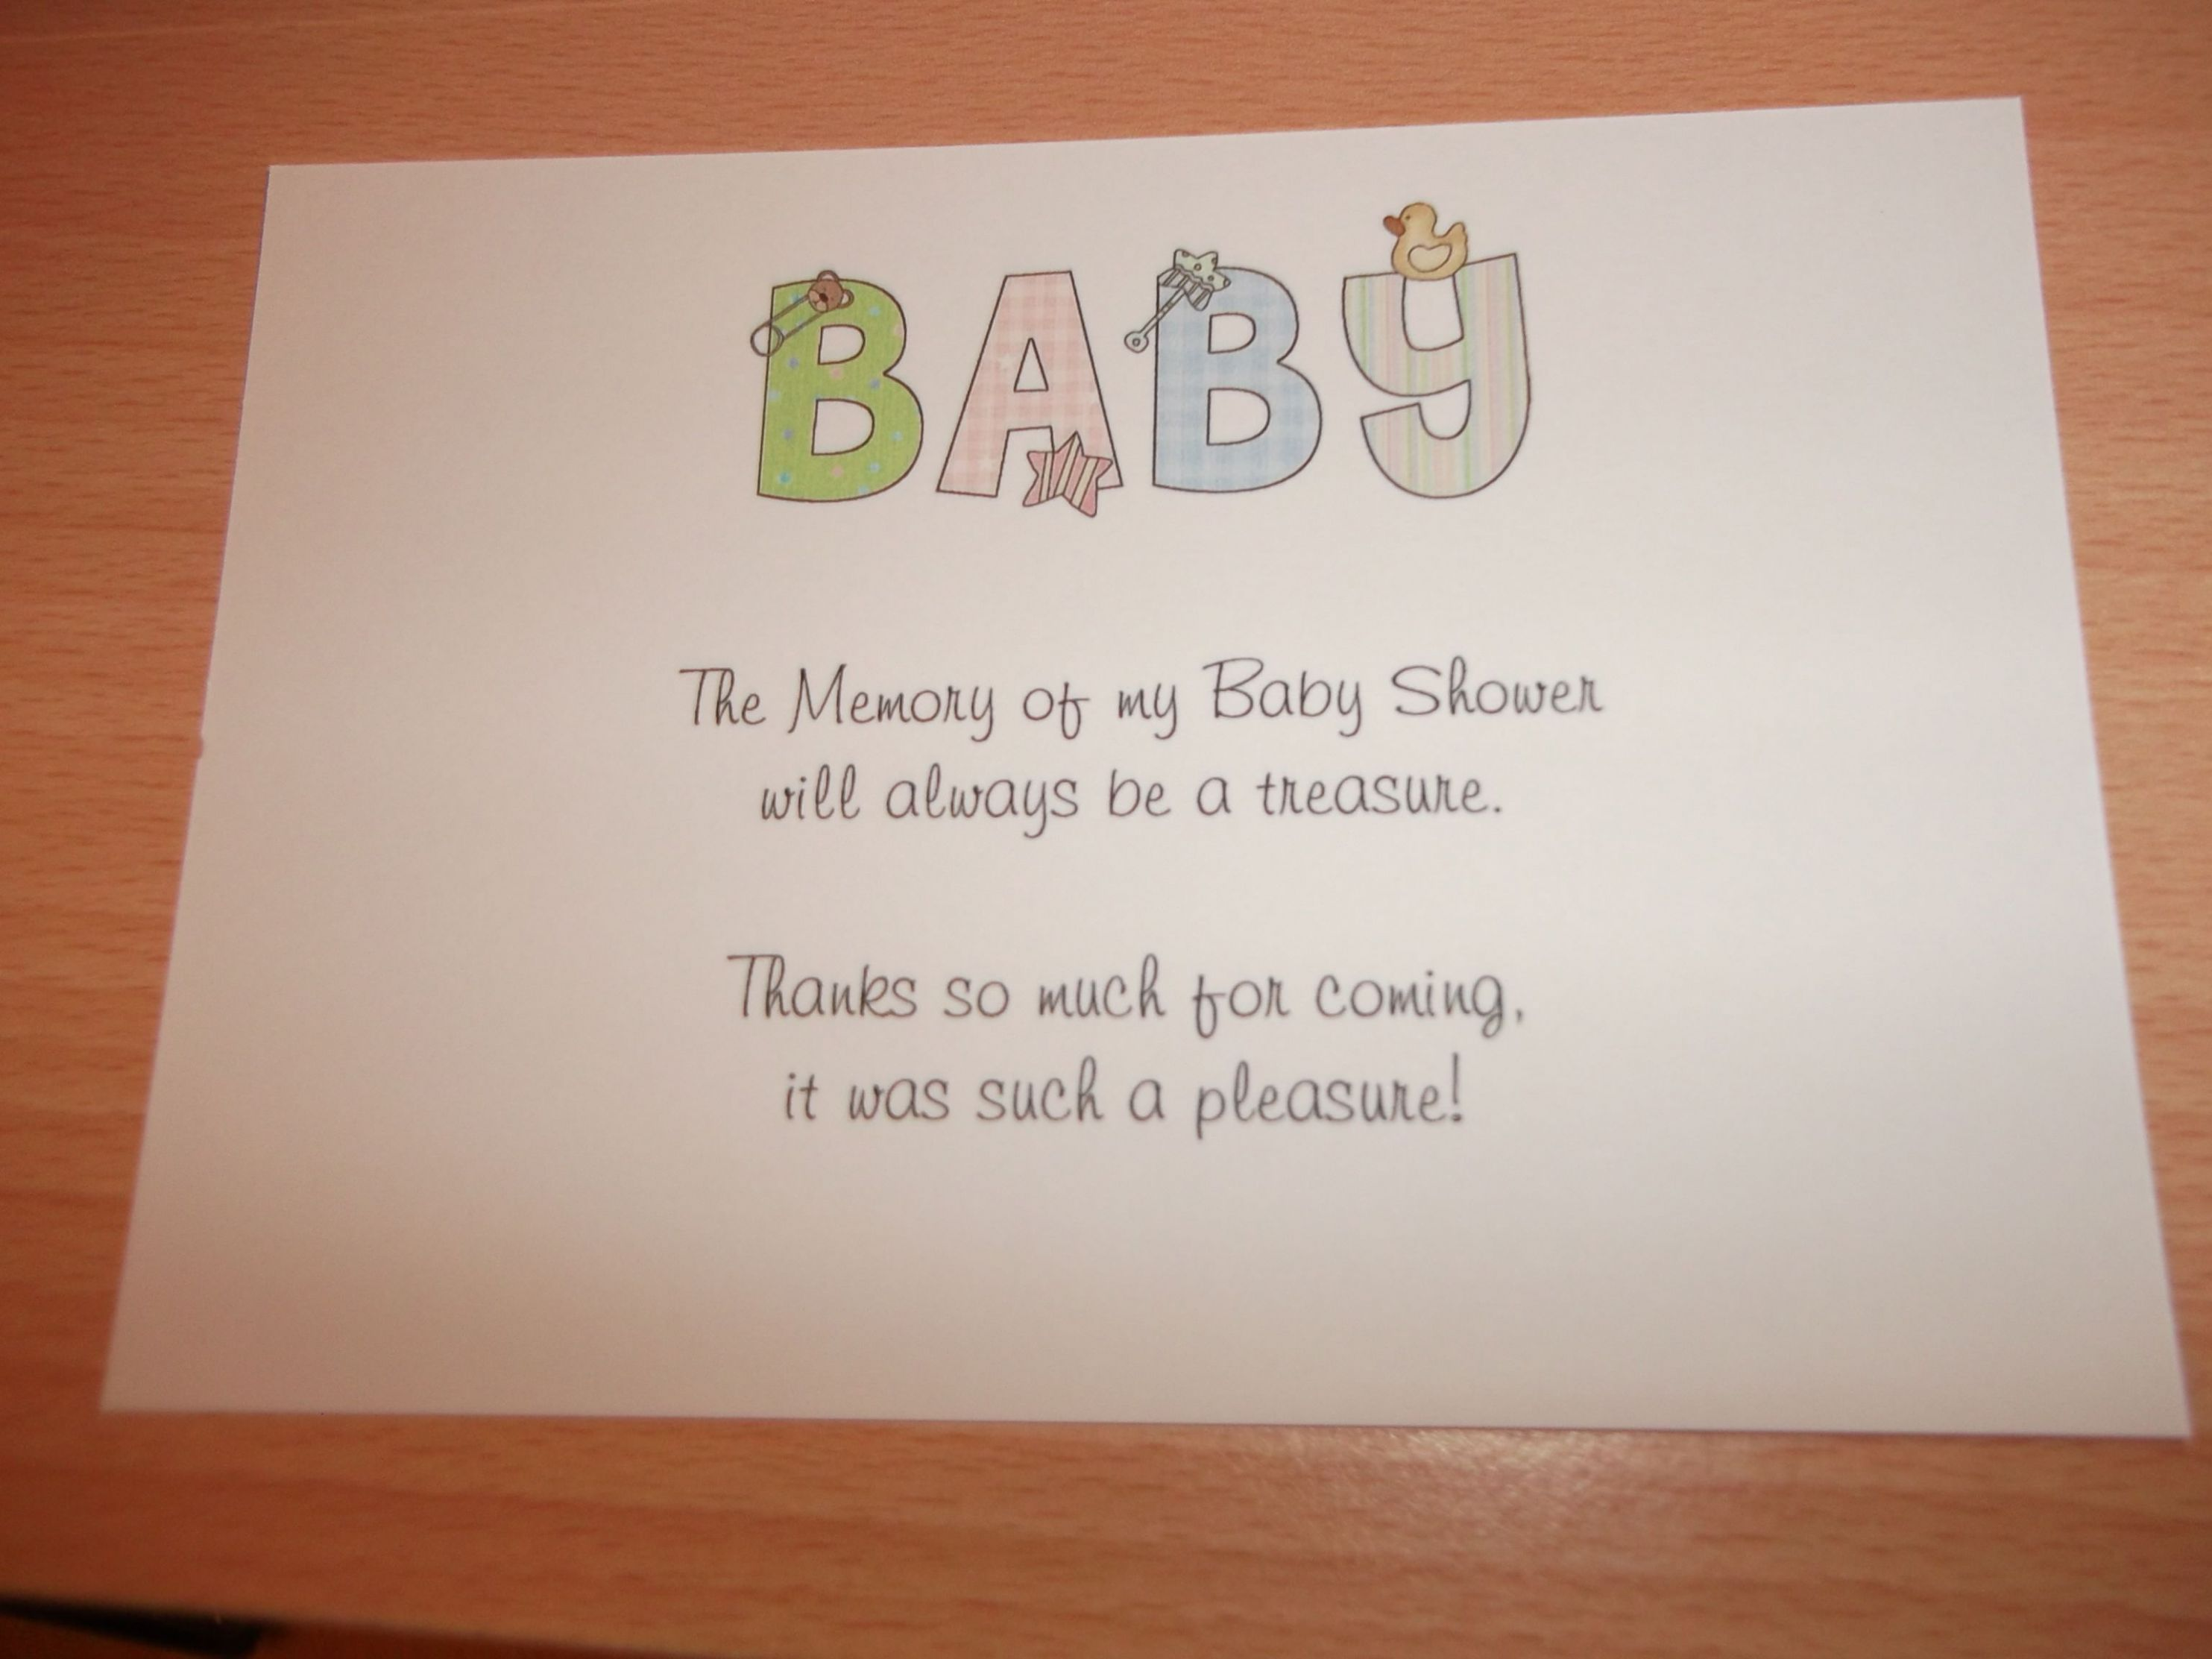 Baby Shower Thank You Gifts   Bing Images